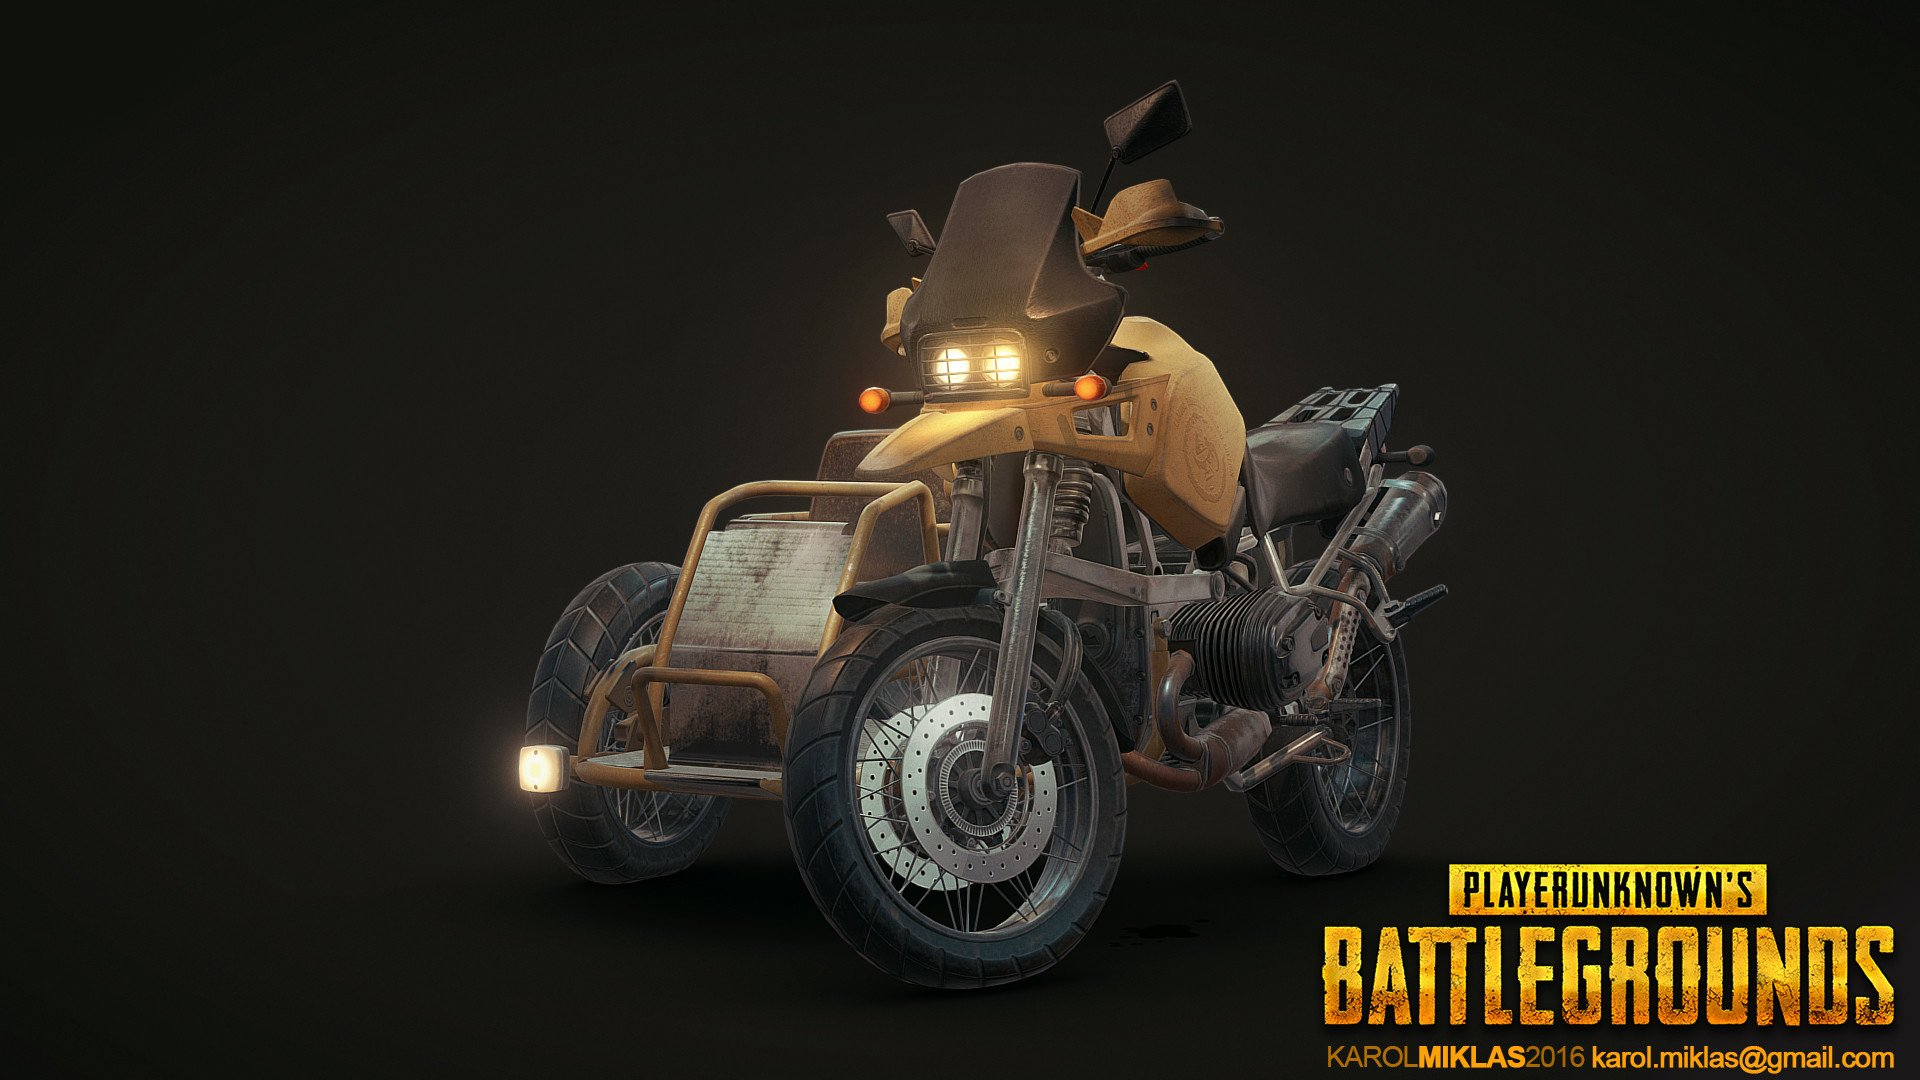 Wallpaper Playerunknown S Battlegrounds Pubg Mobile Game: PlayerUnknown's Battlegrounds HD Wallpaper